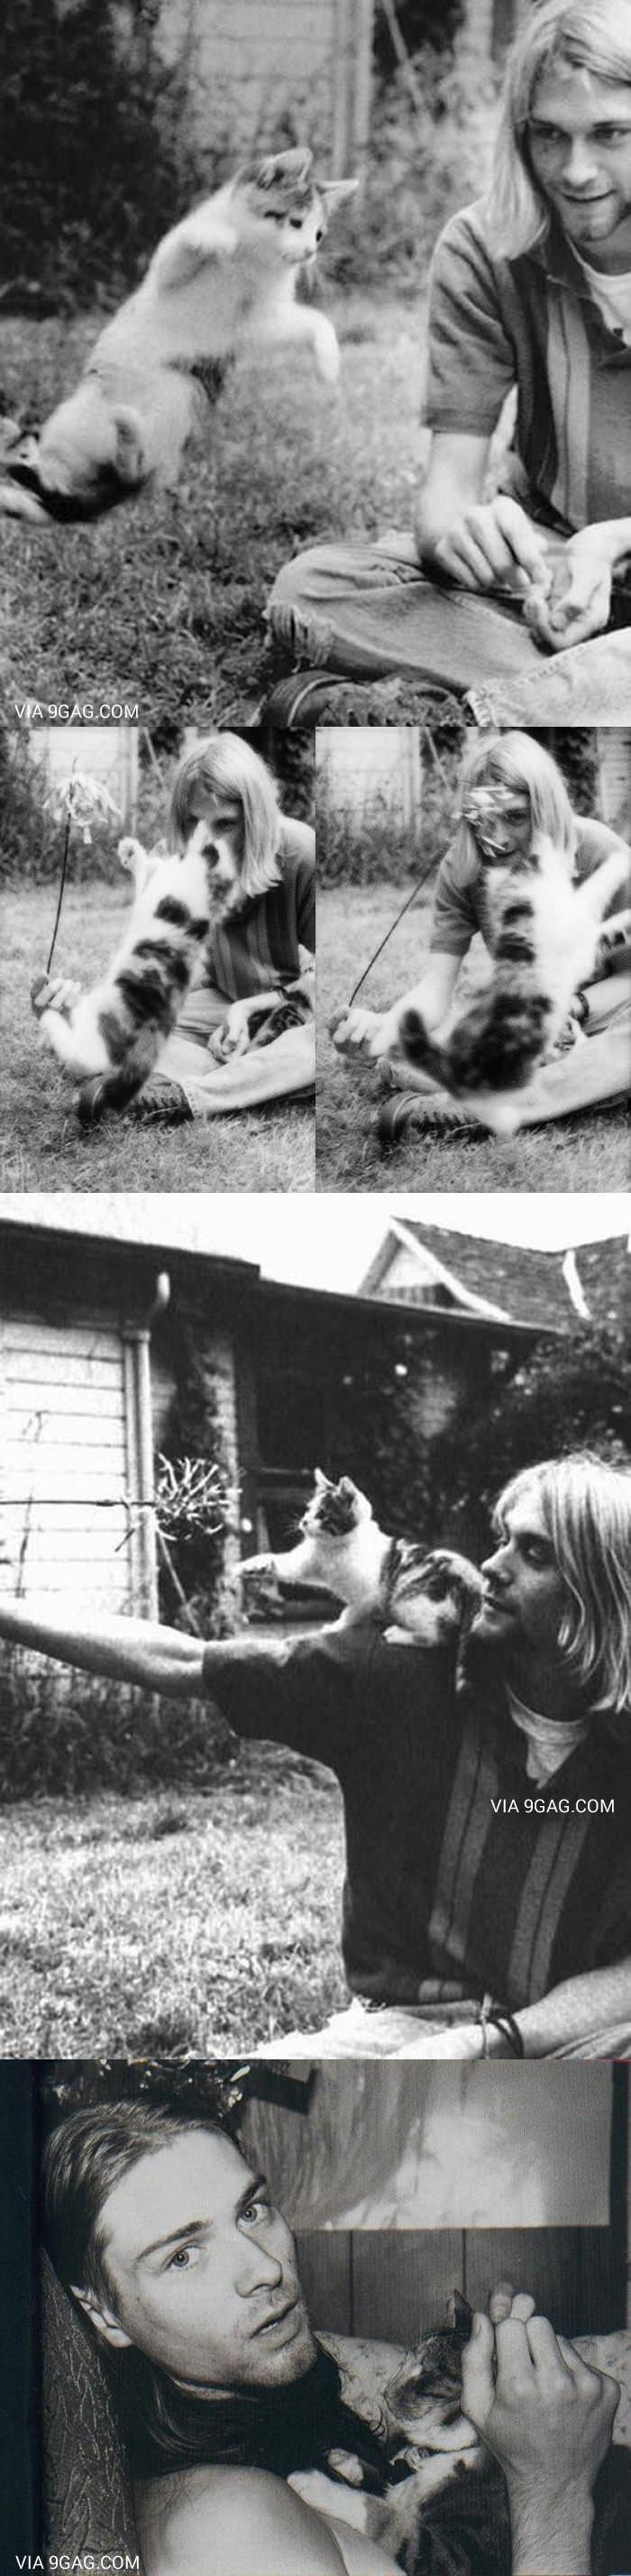 Just Kurt Cobain With His Cat~~ Makes one go awwwwww, cute. Then awwwww, when one remembers.....